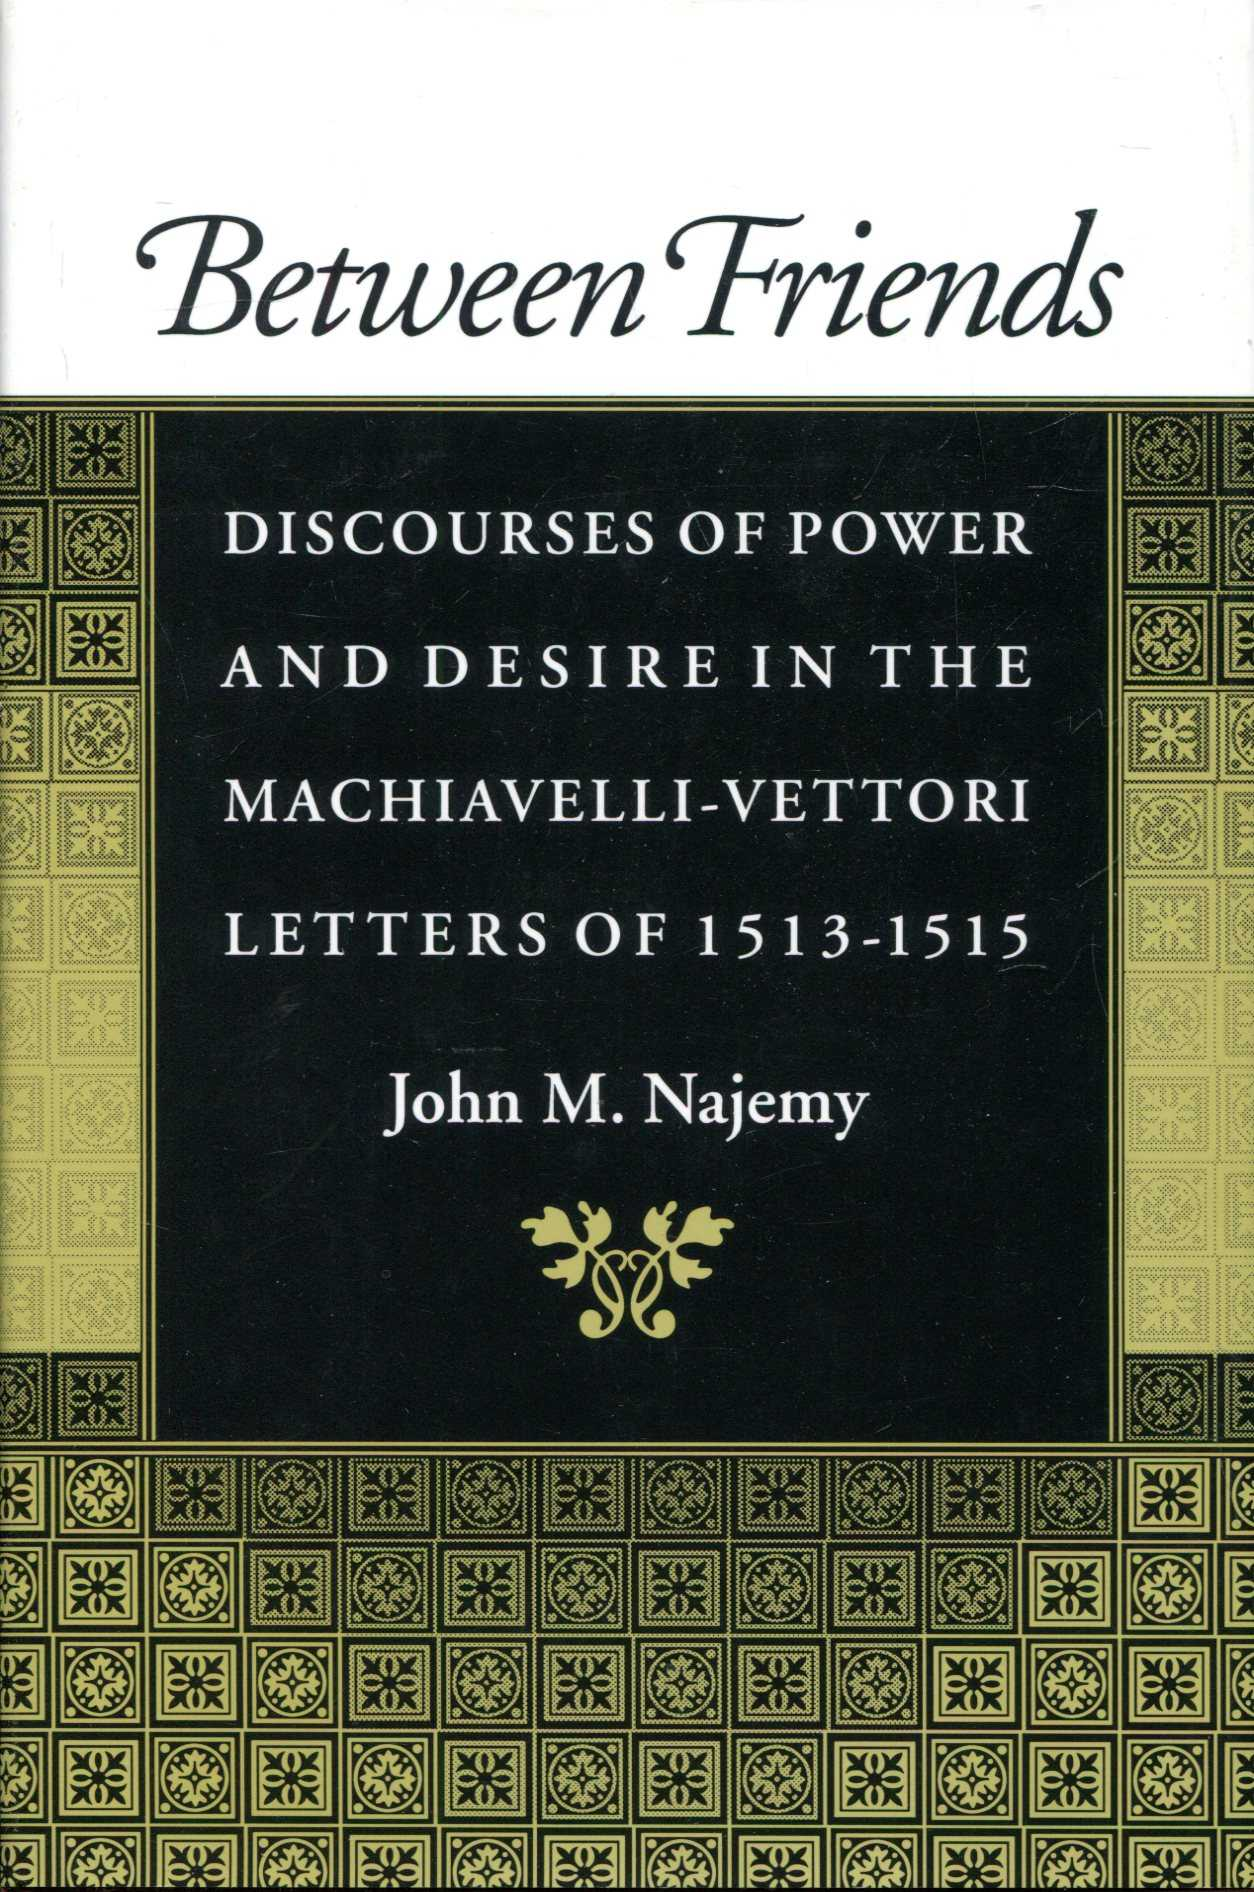 Image for Between Friends : Discourses of Power and Desire in the Machiavelli - Vettori Letters of 1513 - 1515